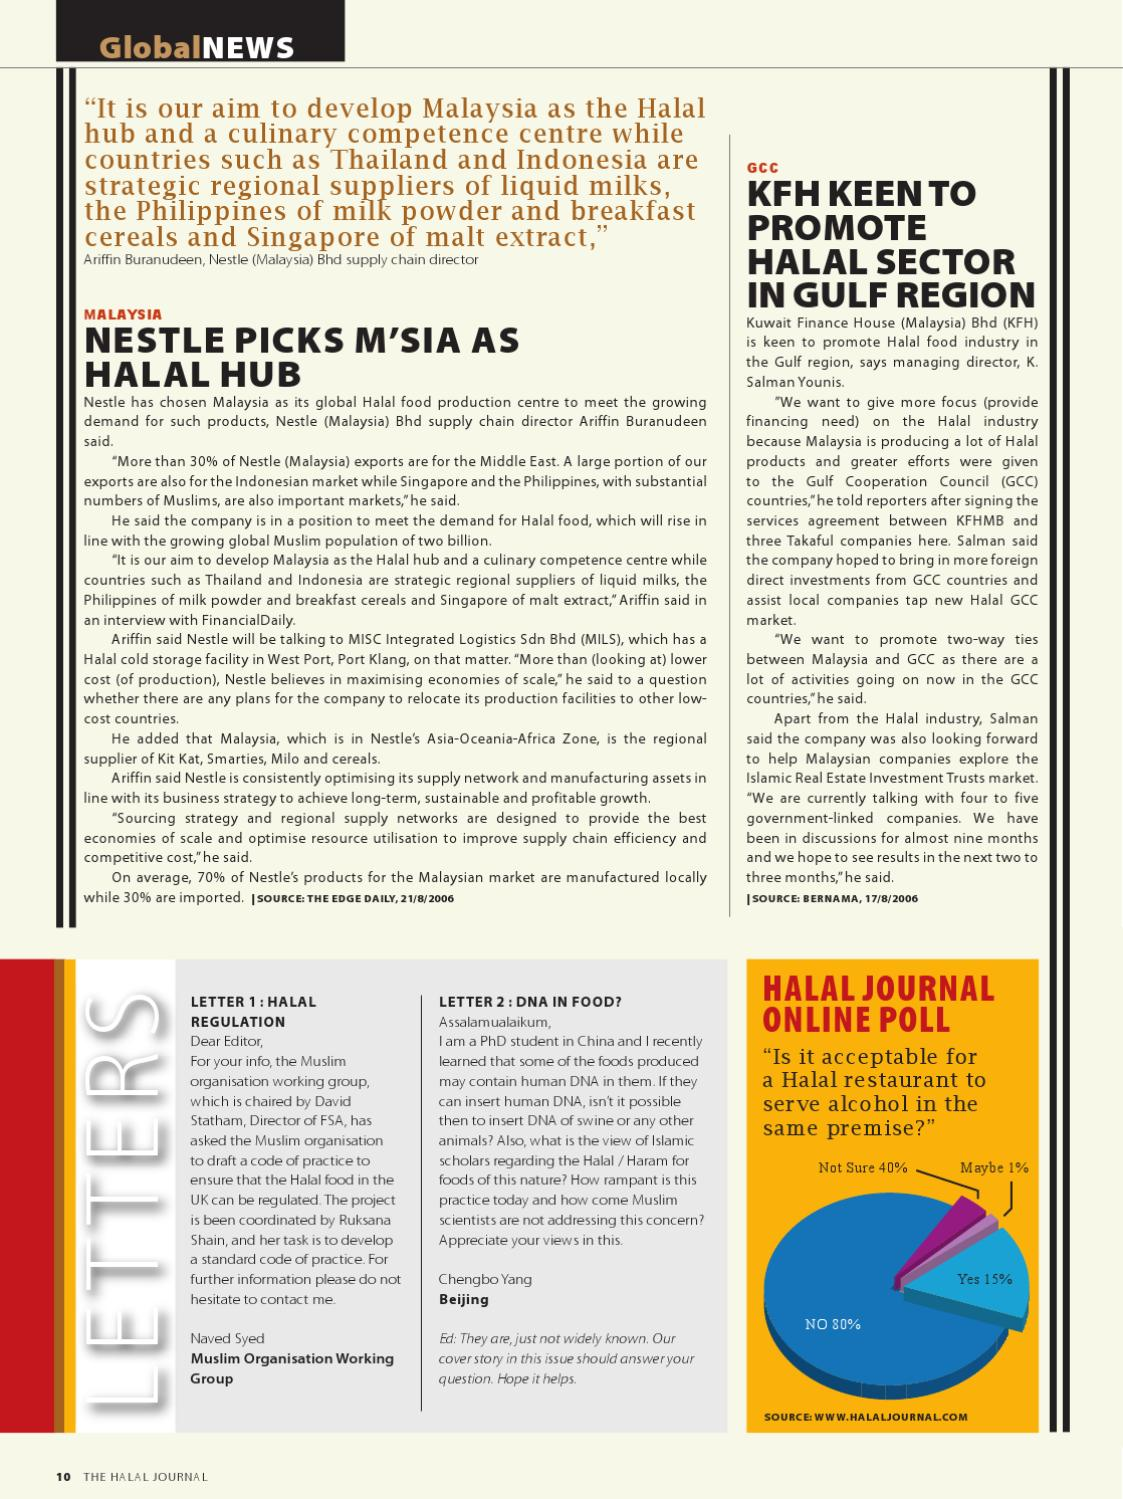 The Halal Journal - Sep/Oct 2006 by The Halal Journal - issuu